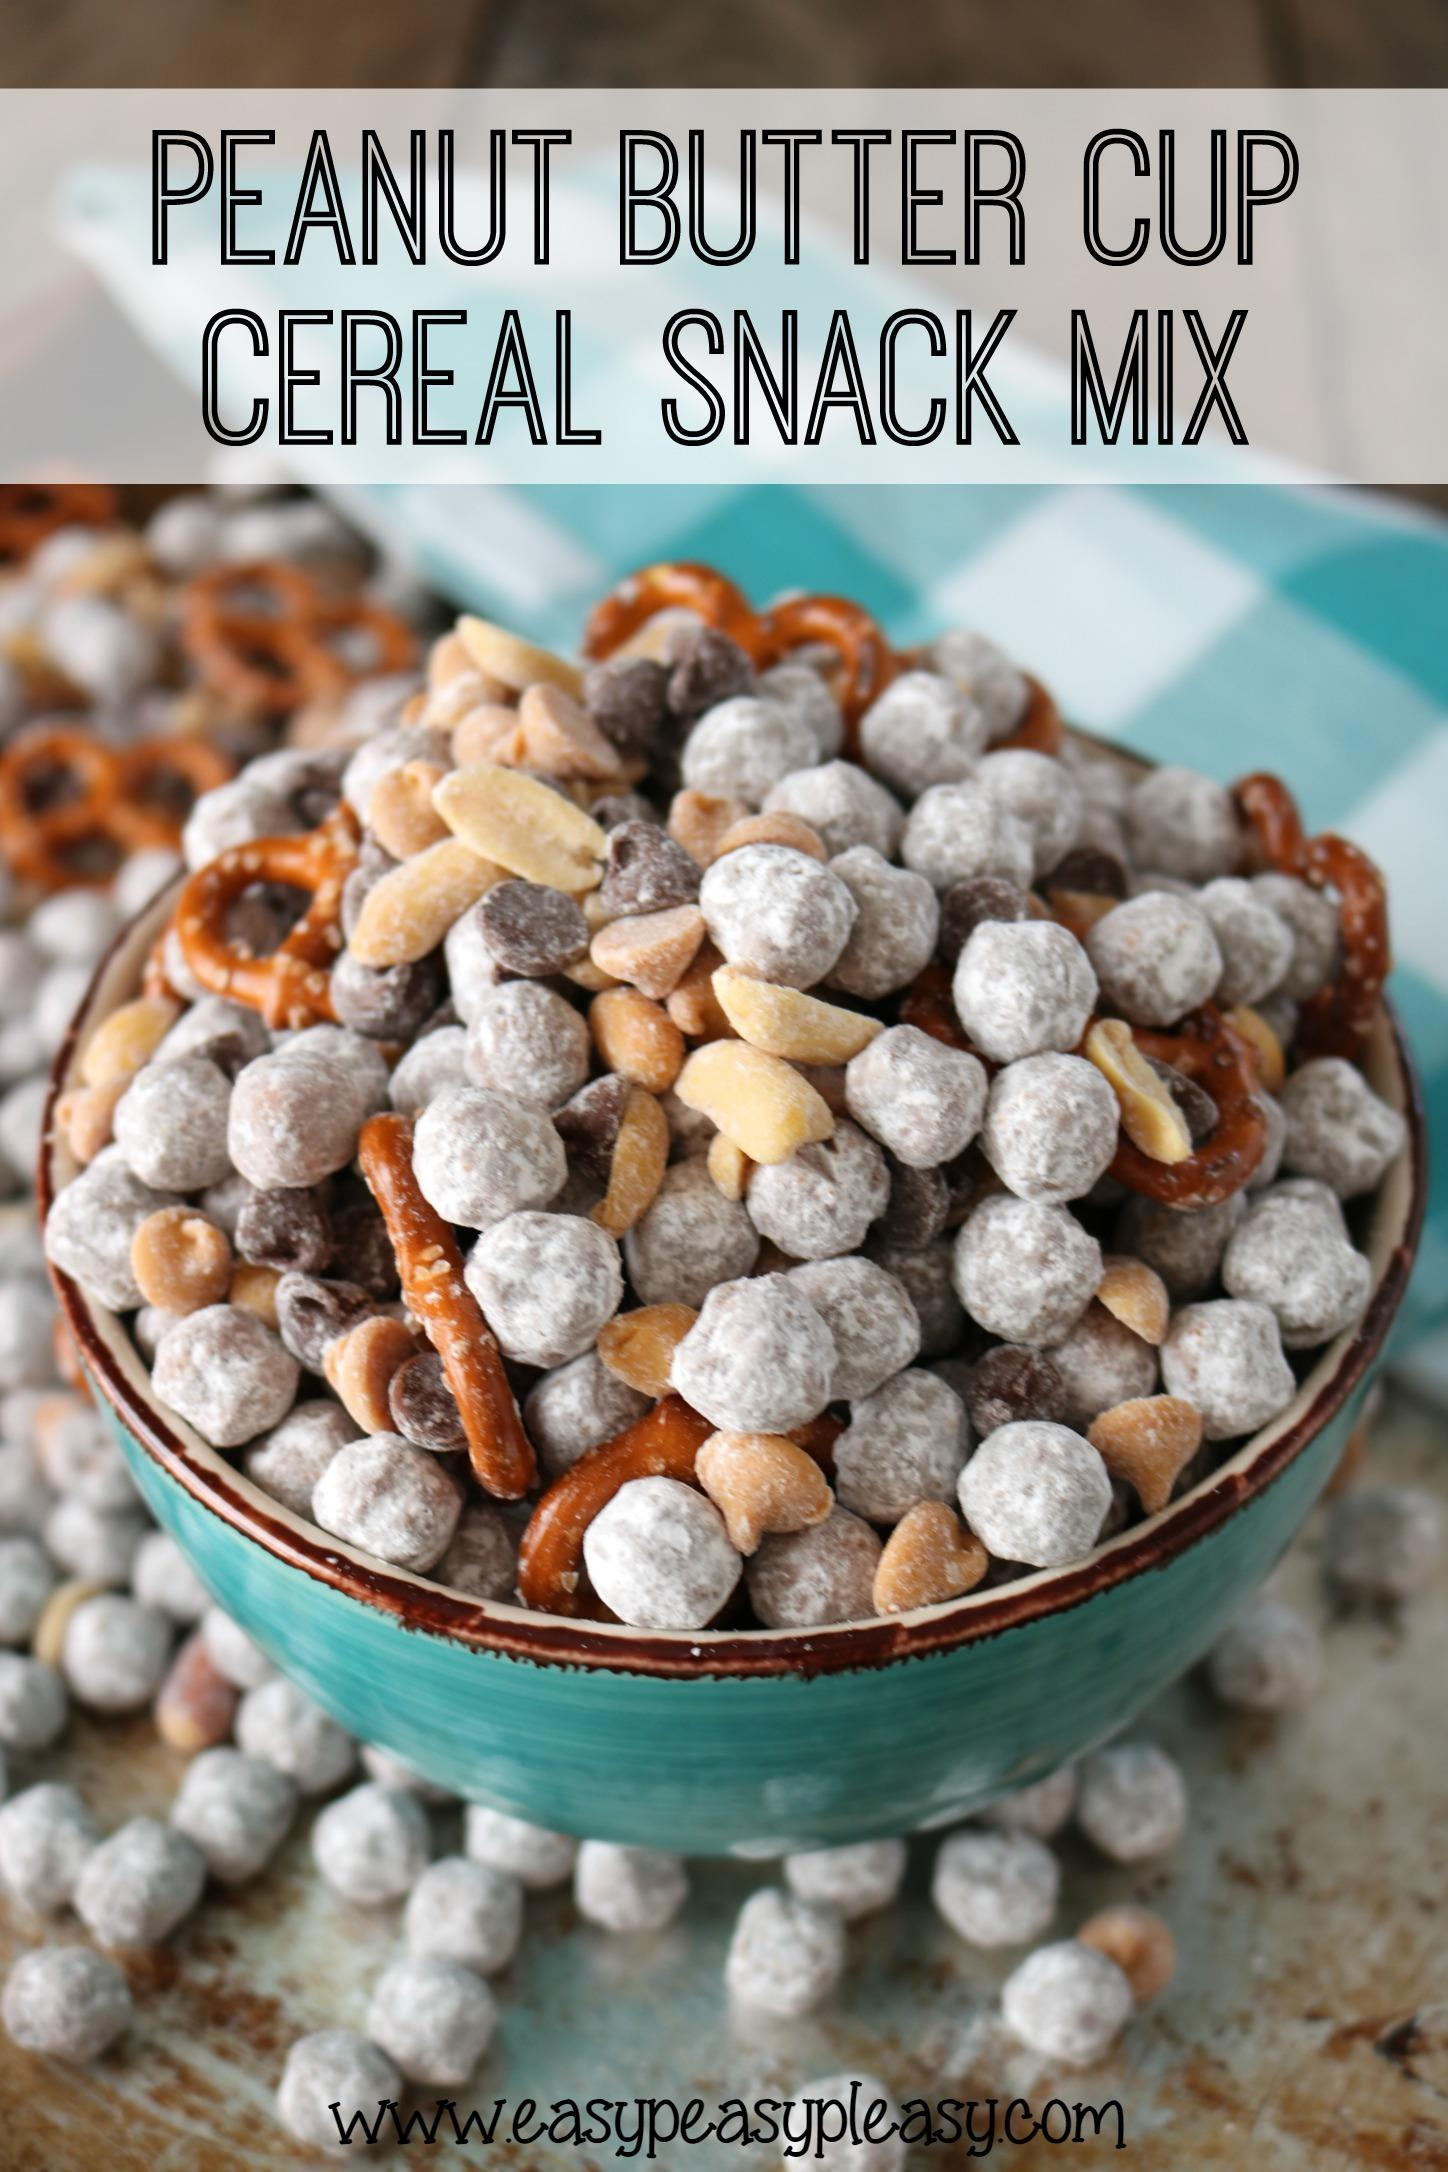 {Linky Party} Peanut Butter Cup Cereal Snack Mix from  EasyPeasyPleasy.com